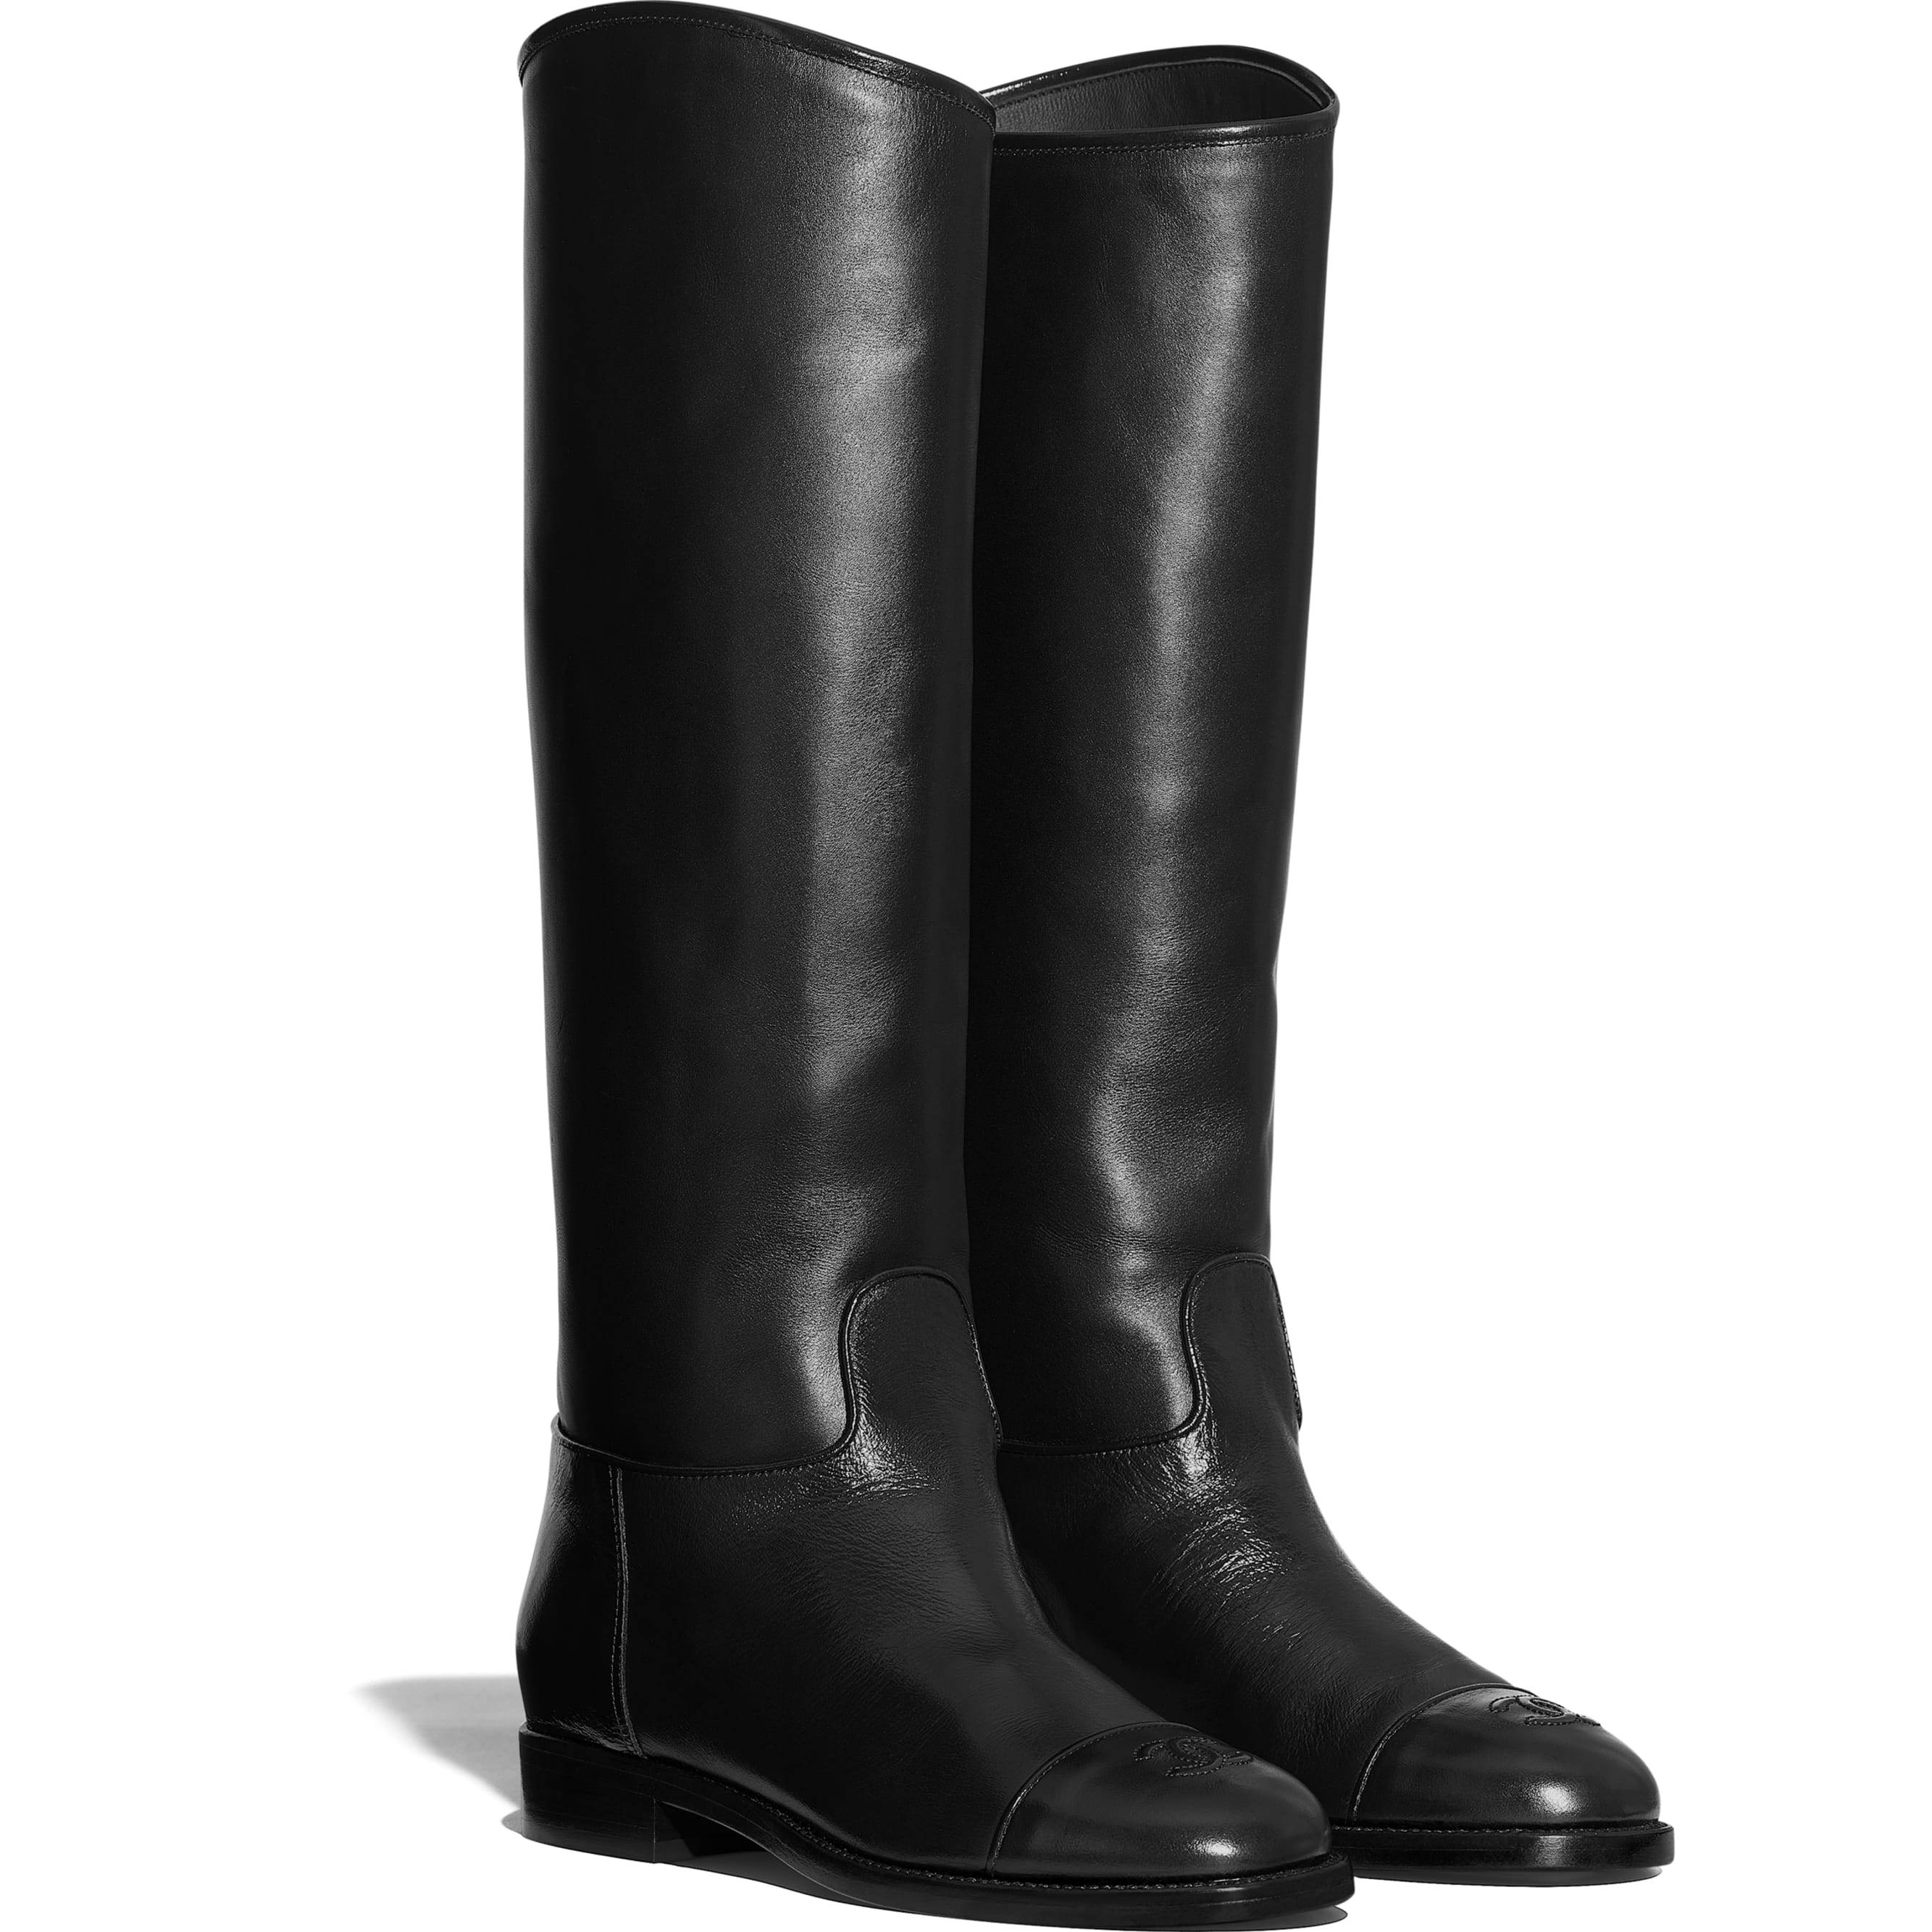 High Boots - Black - Calfskin - Alternative view - see standard sized version